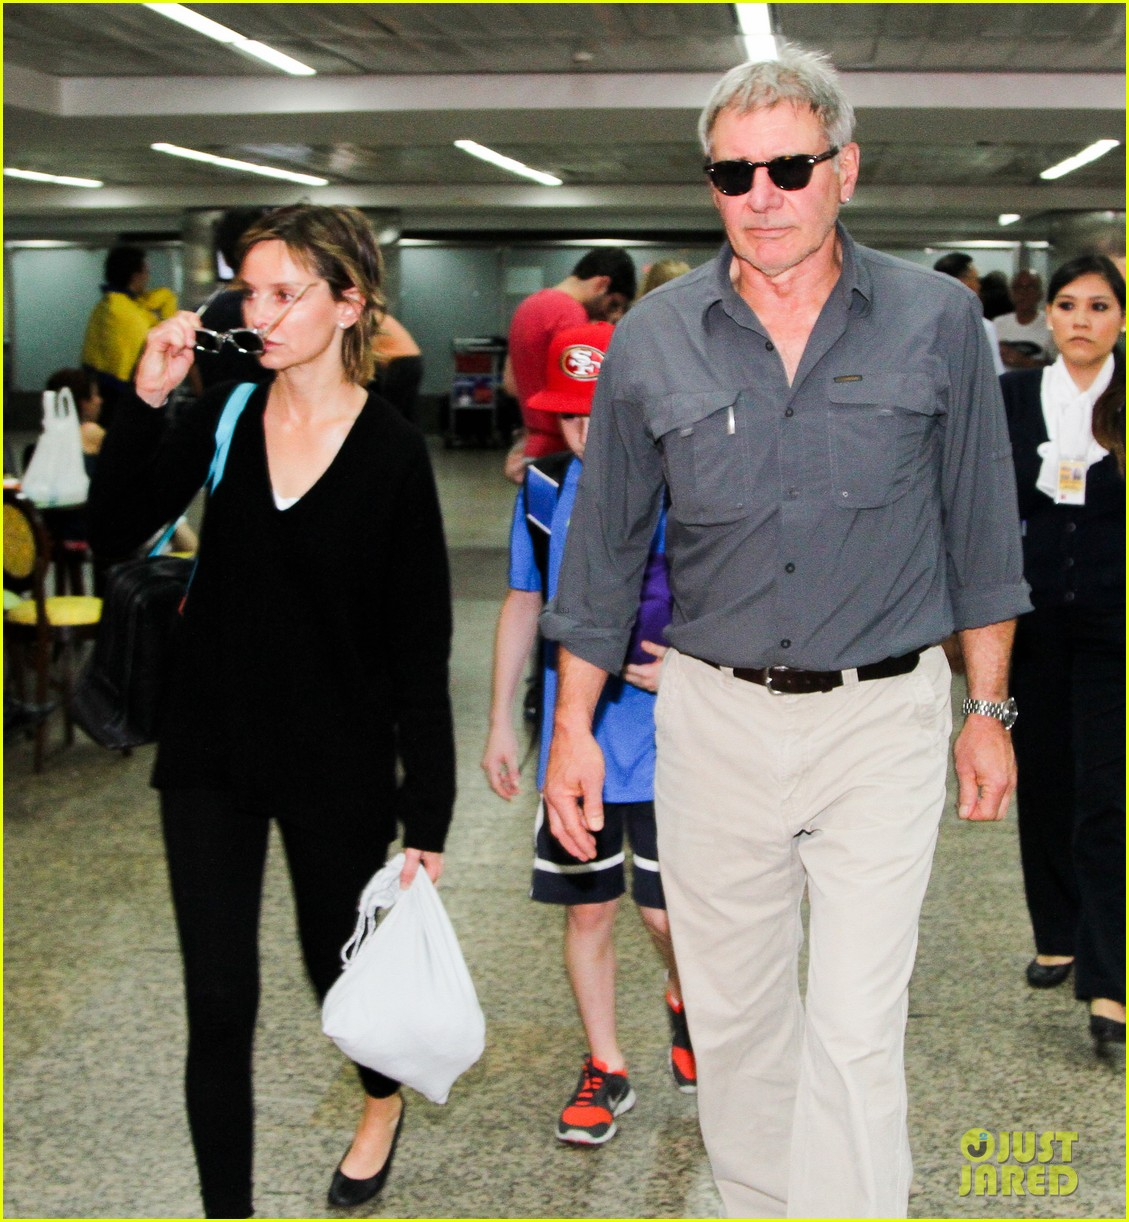 harrison ford family vacation after star wars 7 news 08